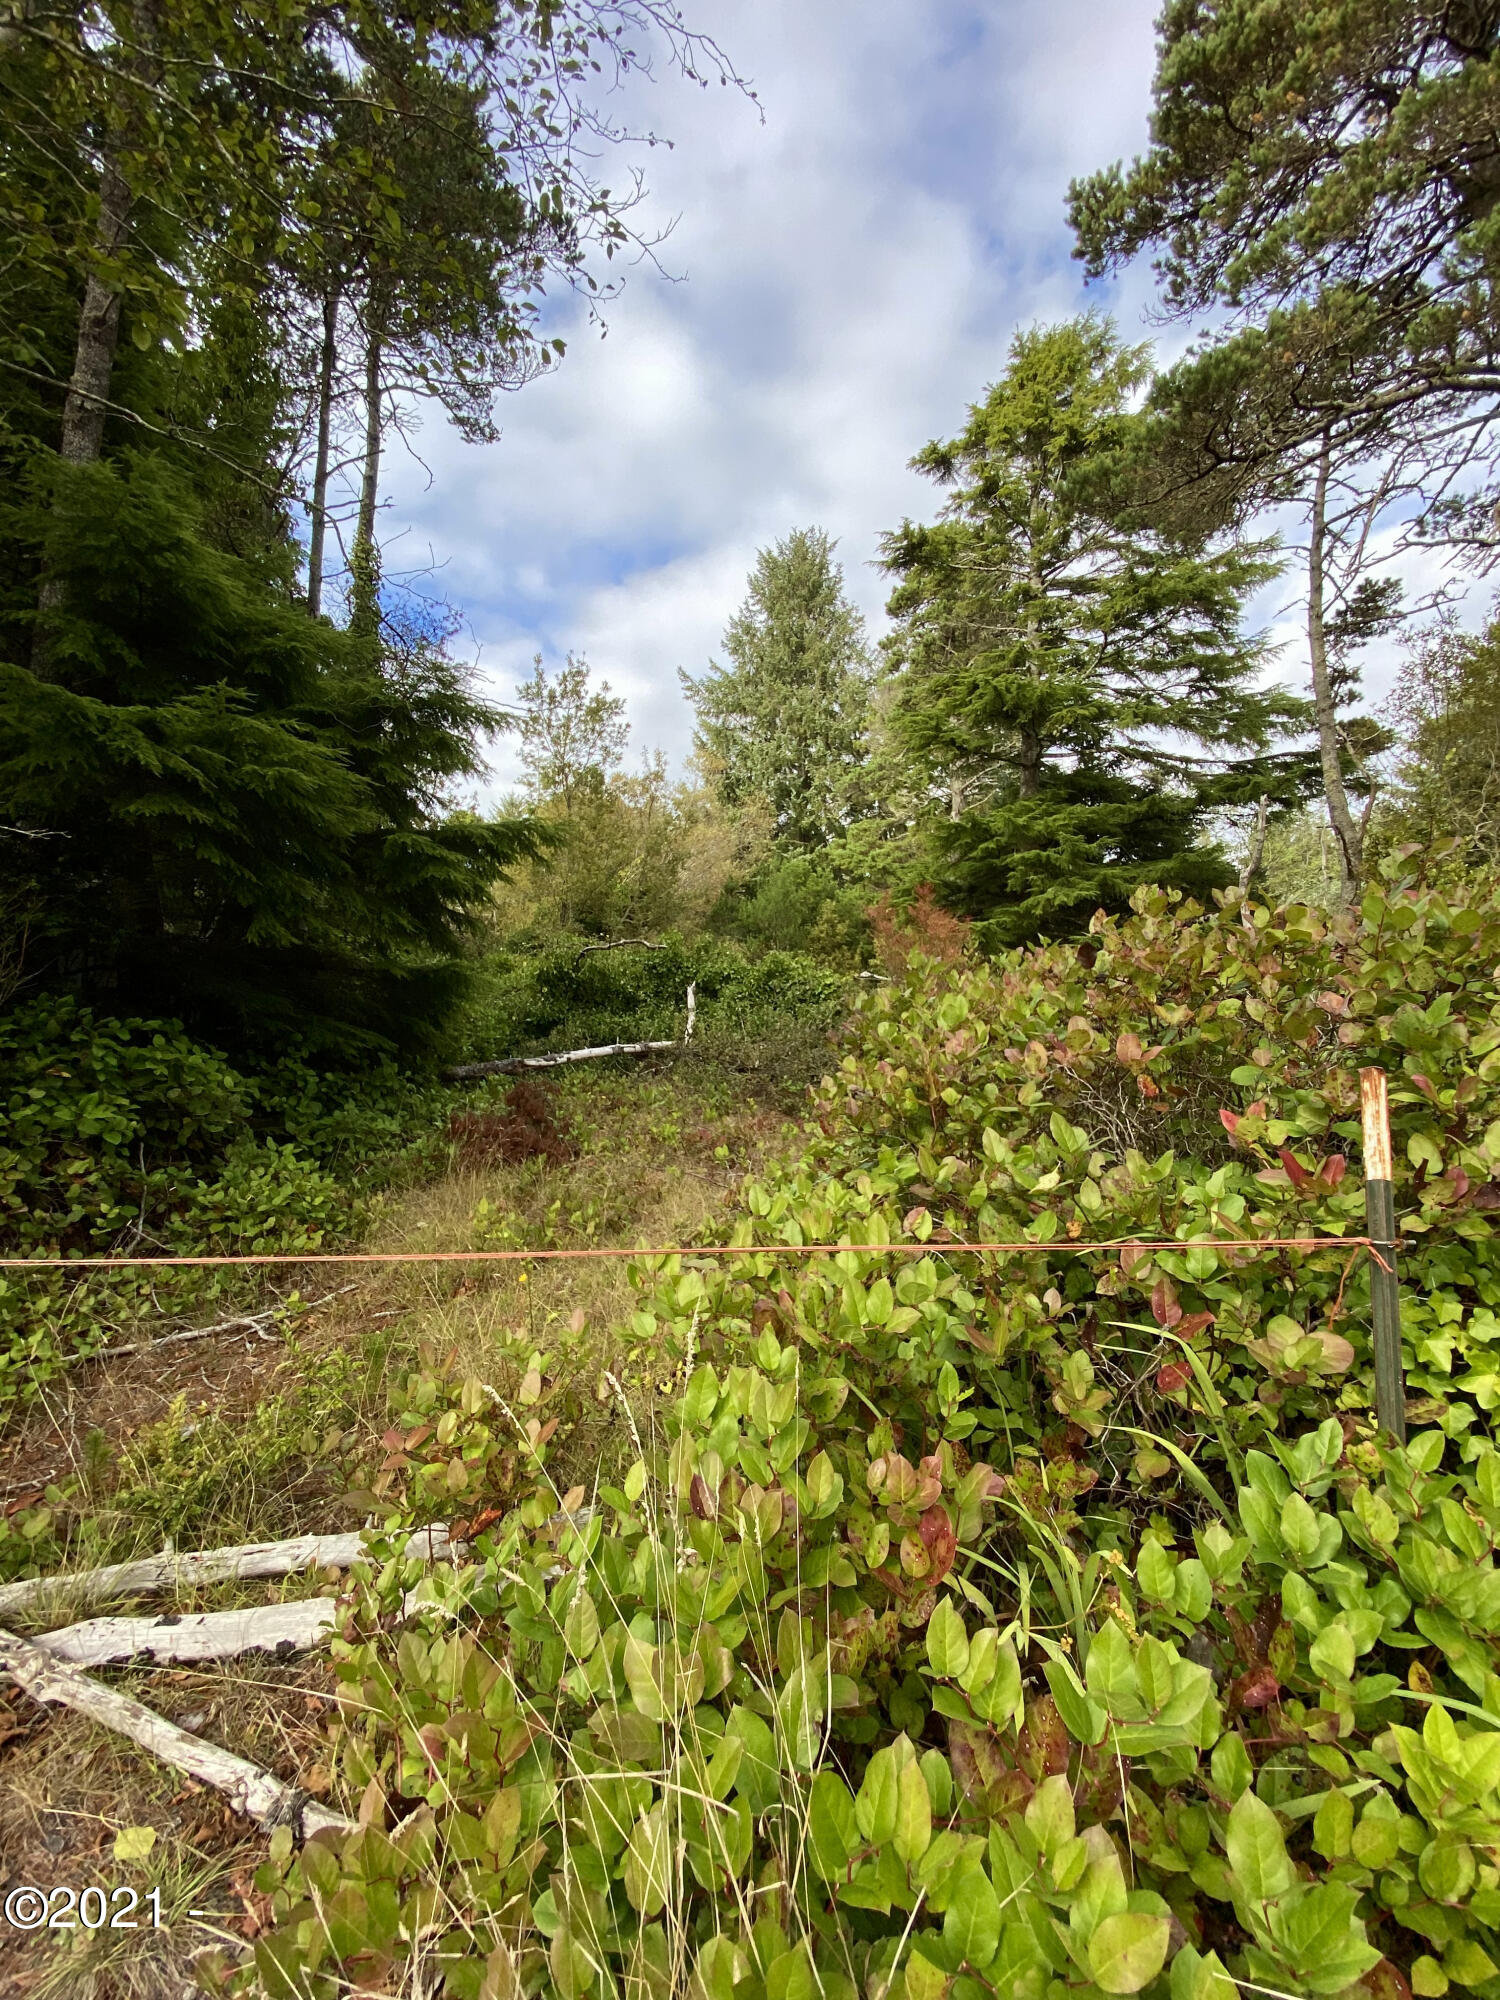 TL 2600 NE Nevada St, Yachats, OR 97498 - Enter lot from Nevada St